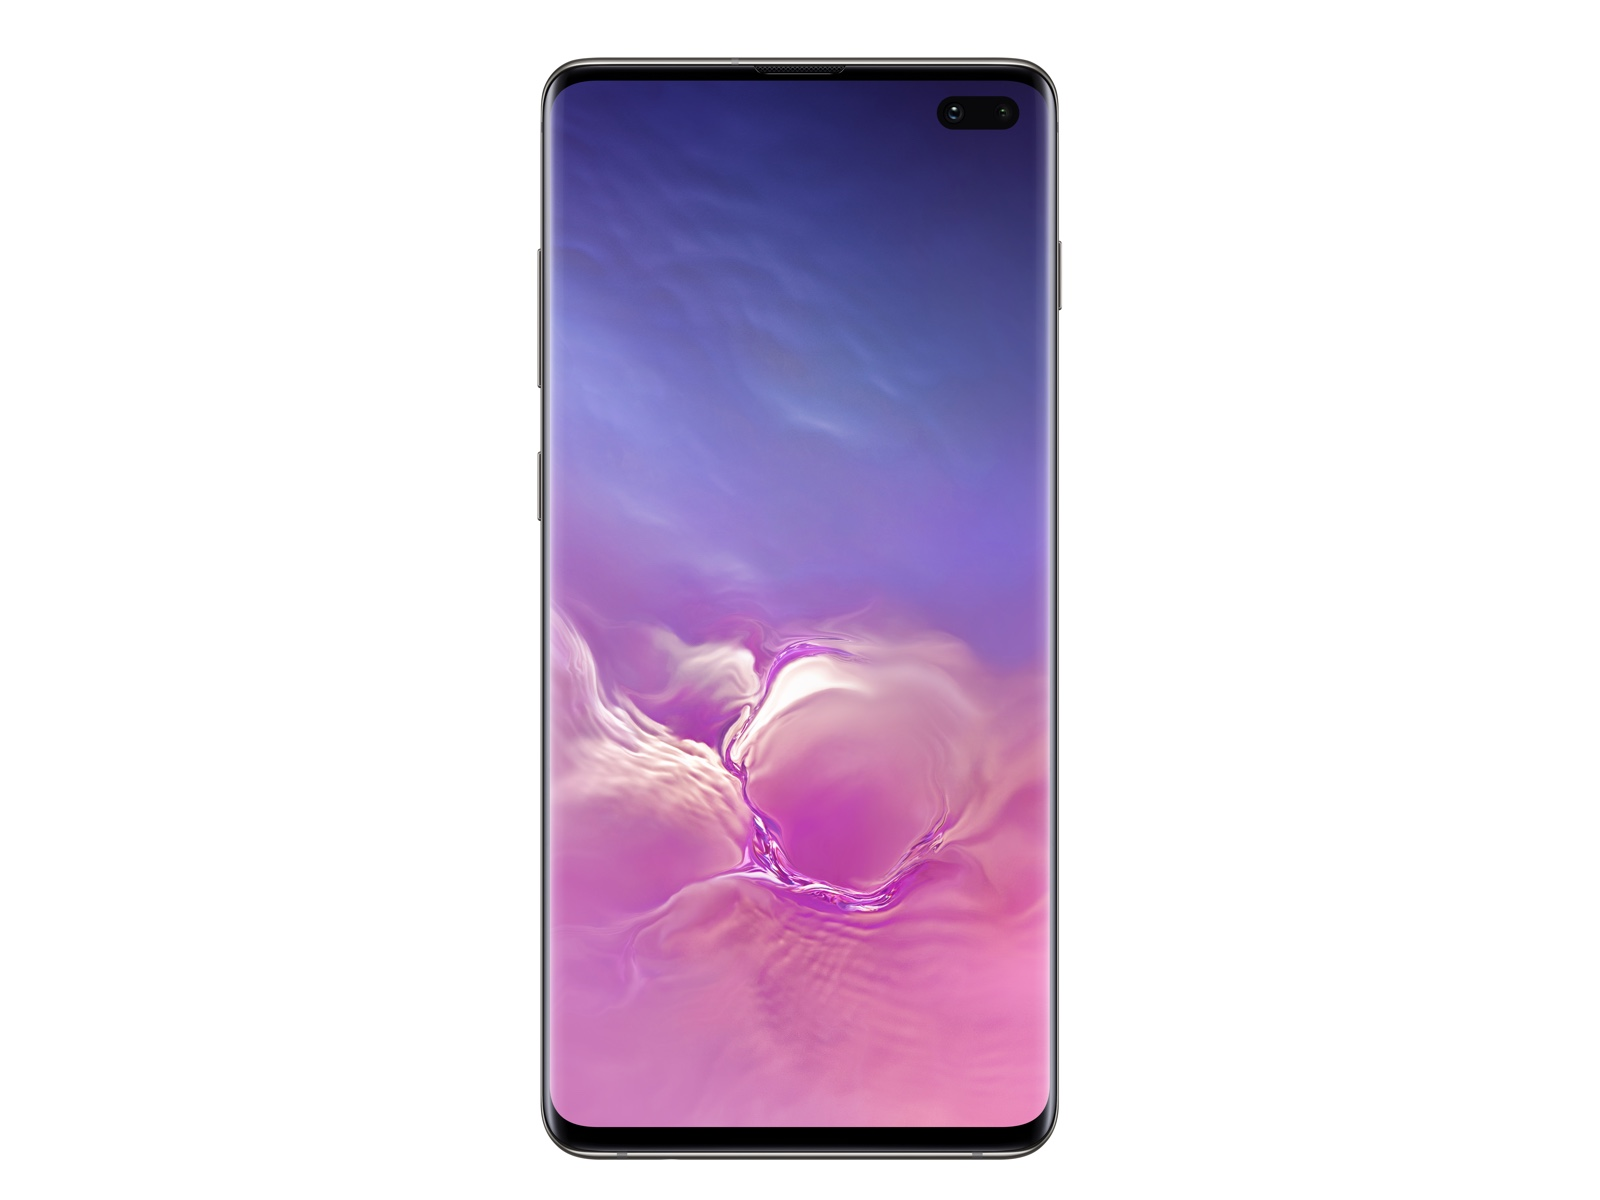 Galaxy S10+ 512GB (Unlocked)